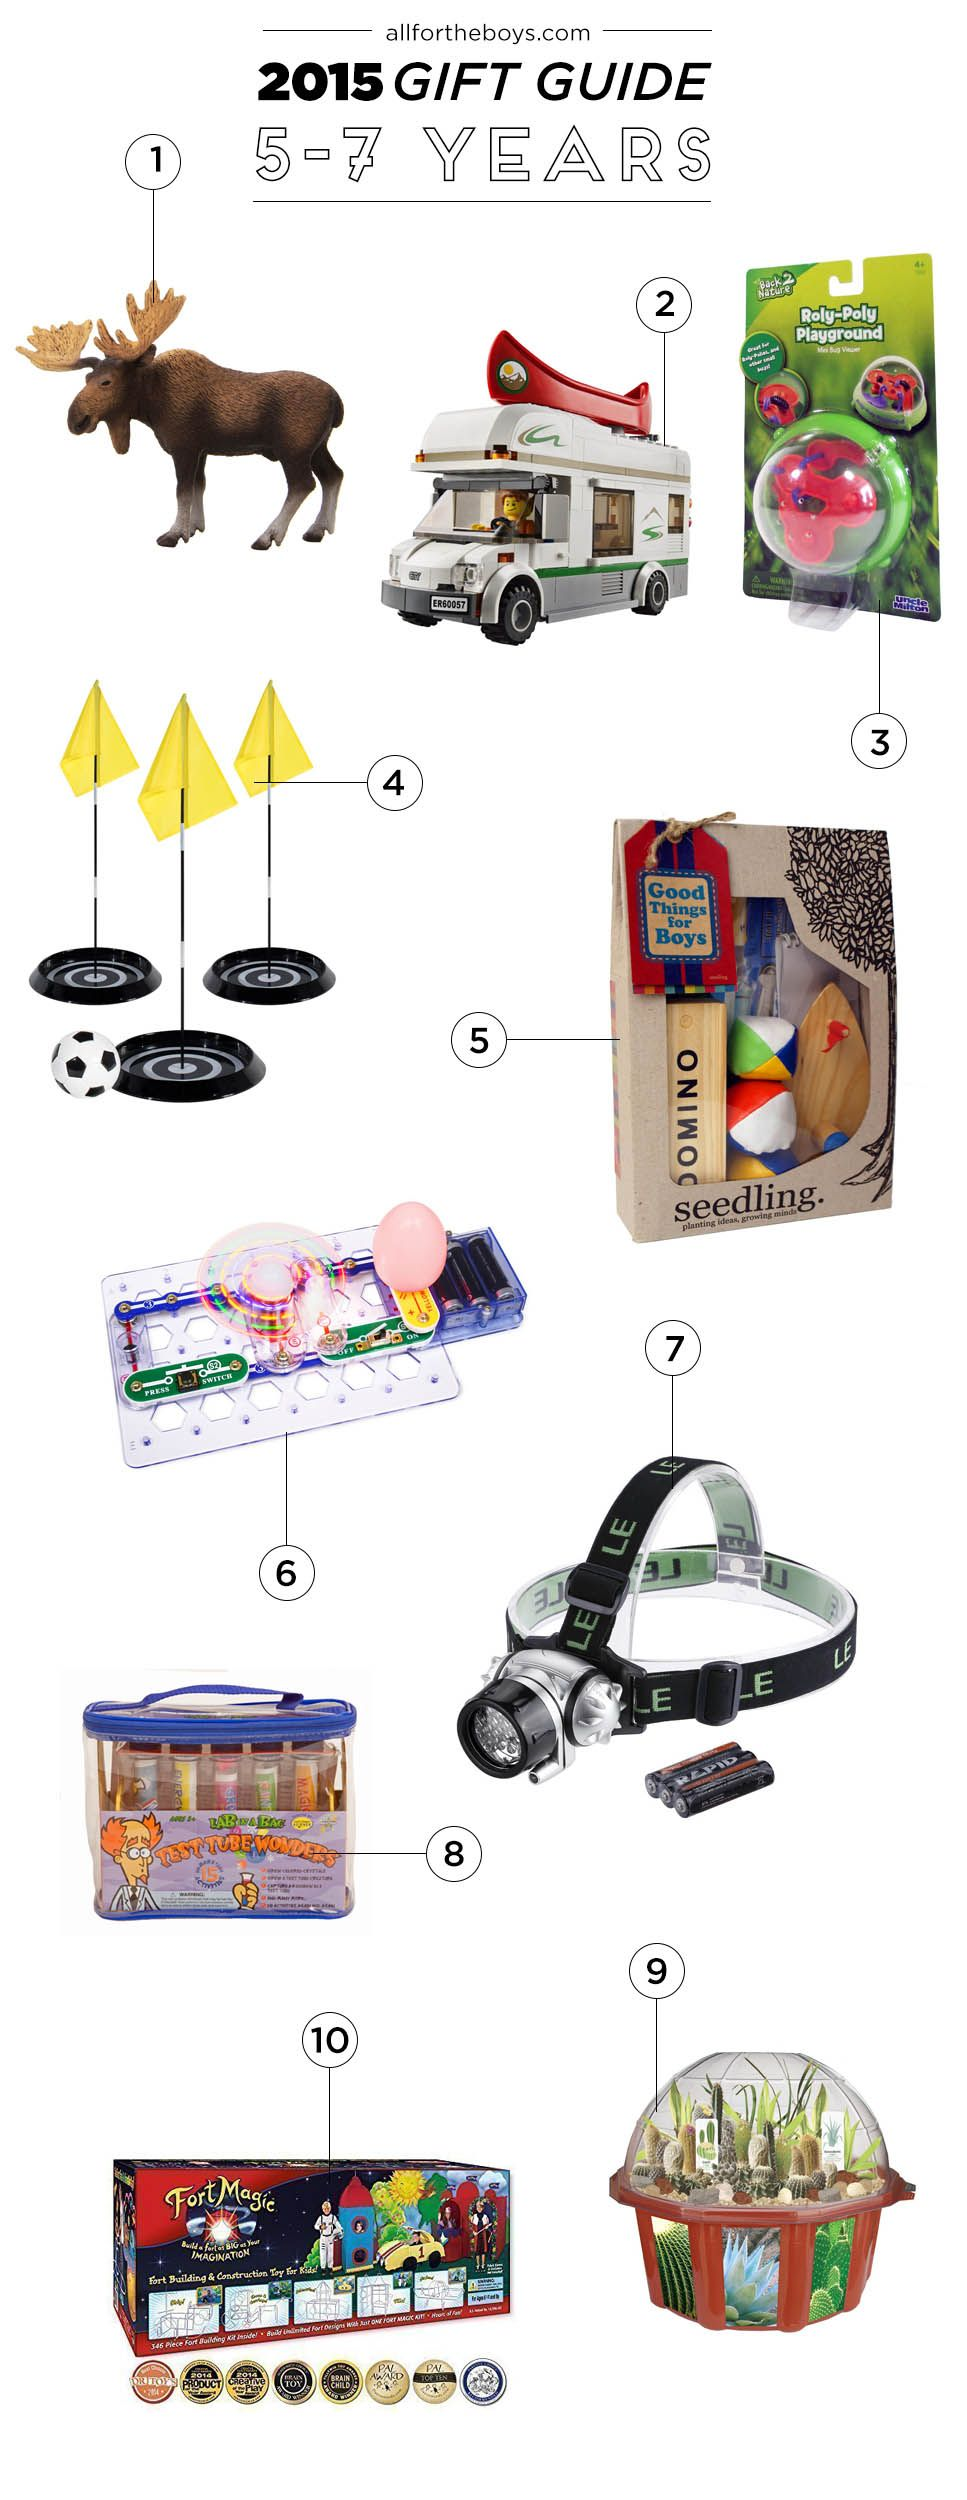 2015 gift guide 5 7 year olds all for the boys